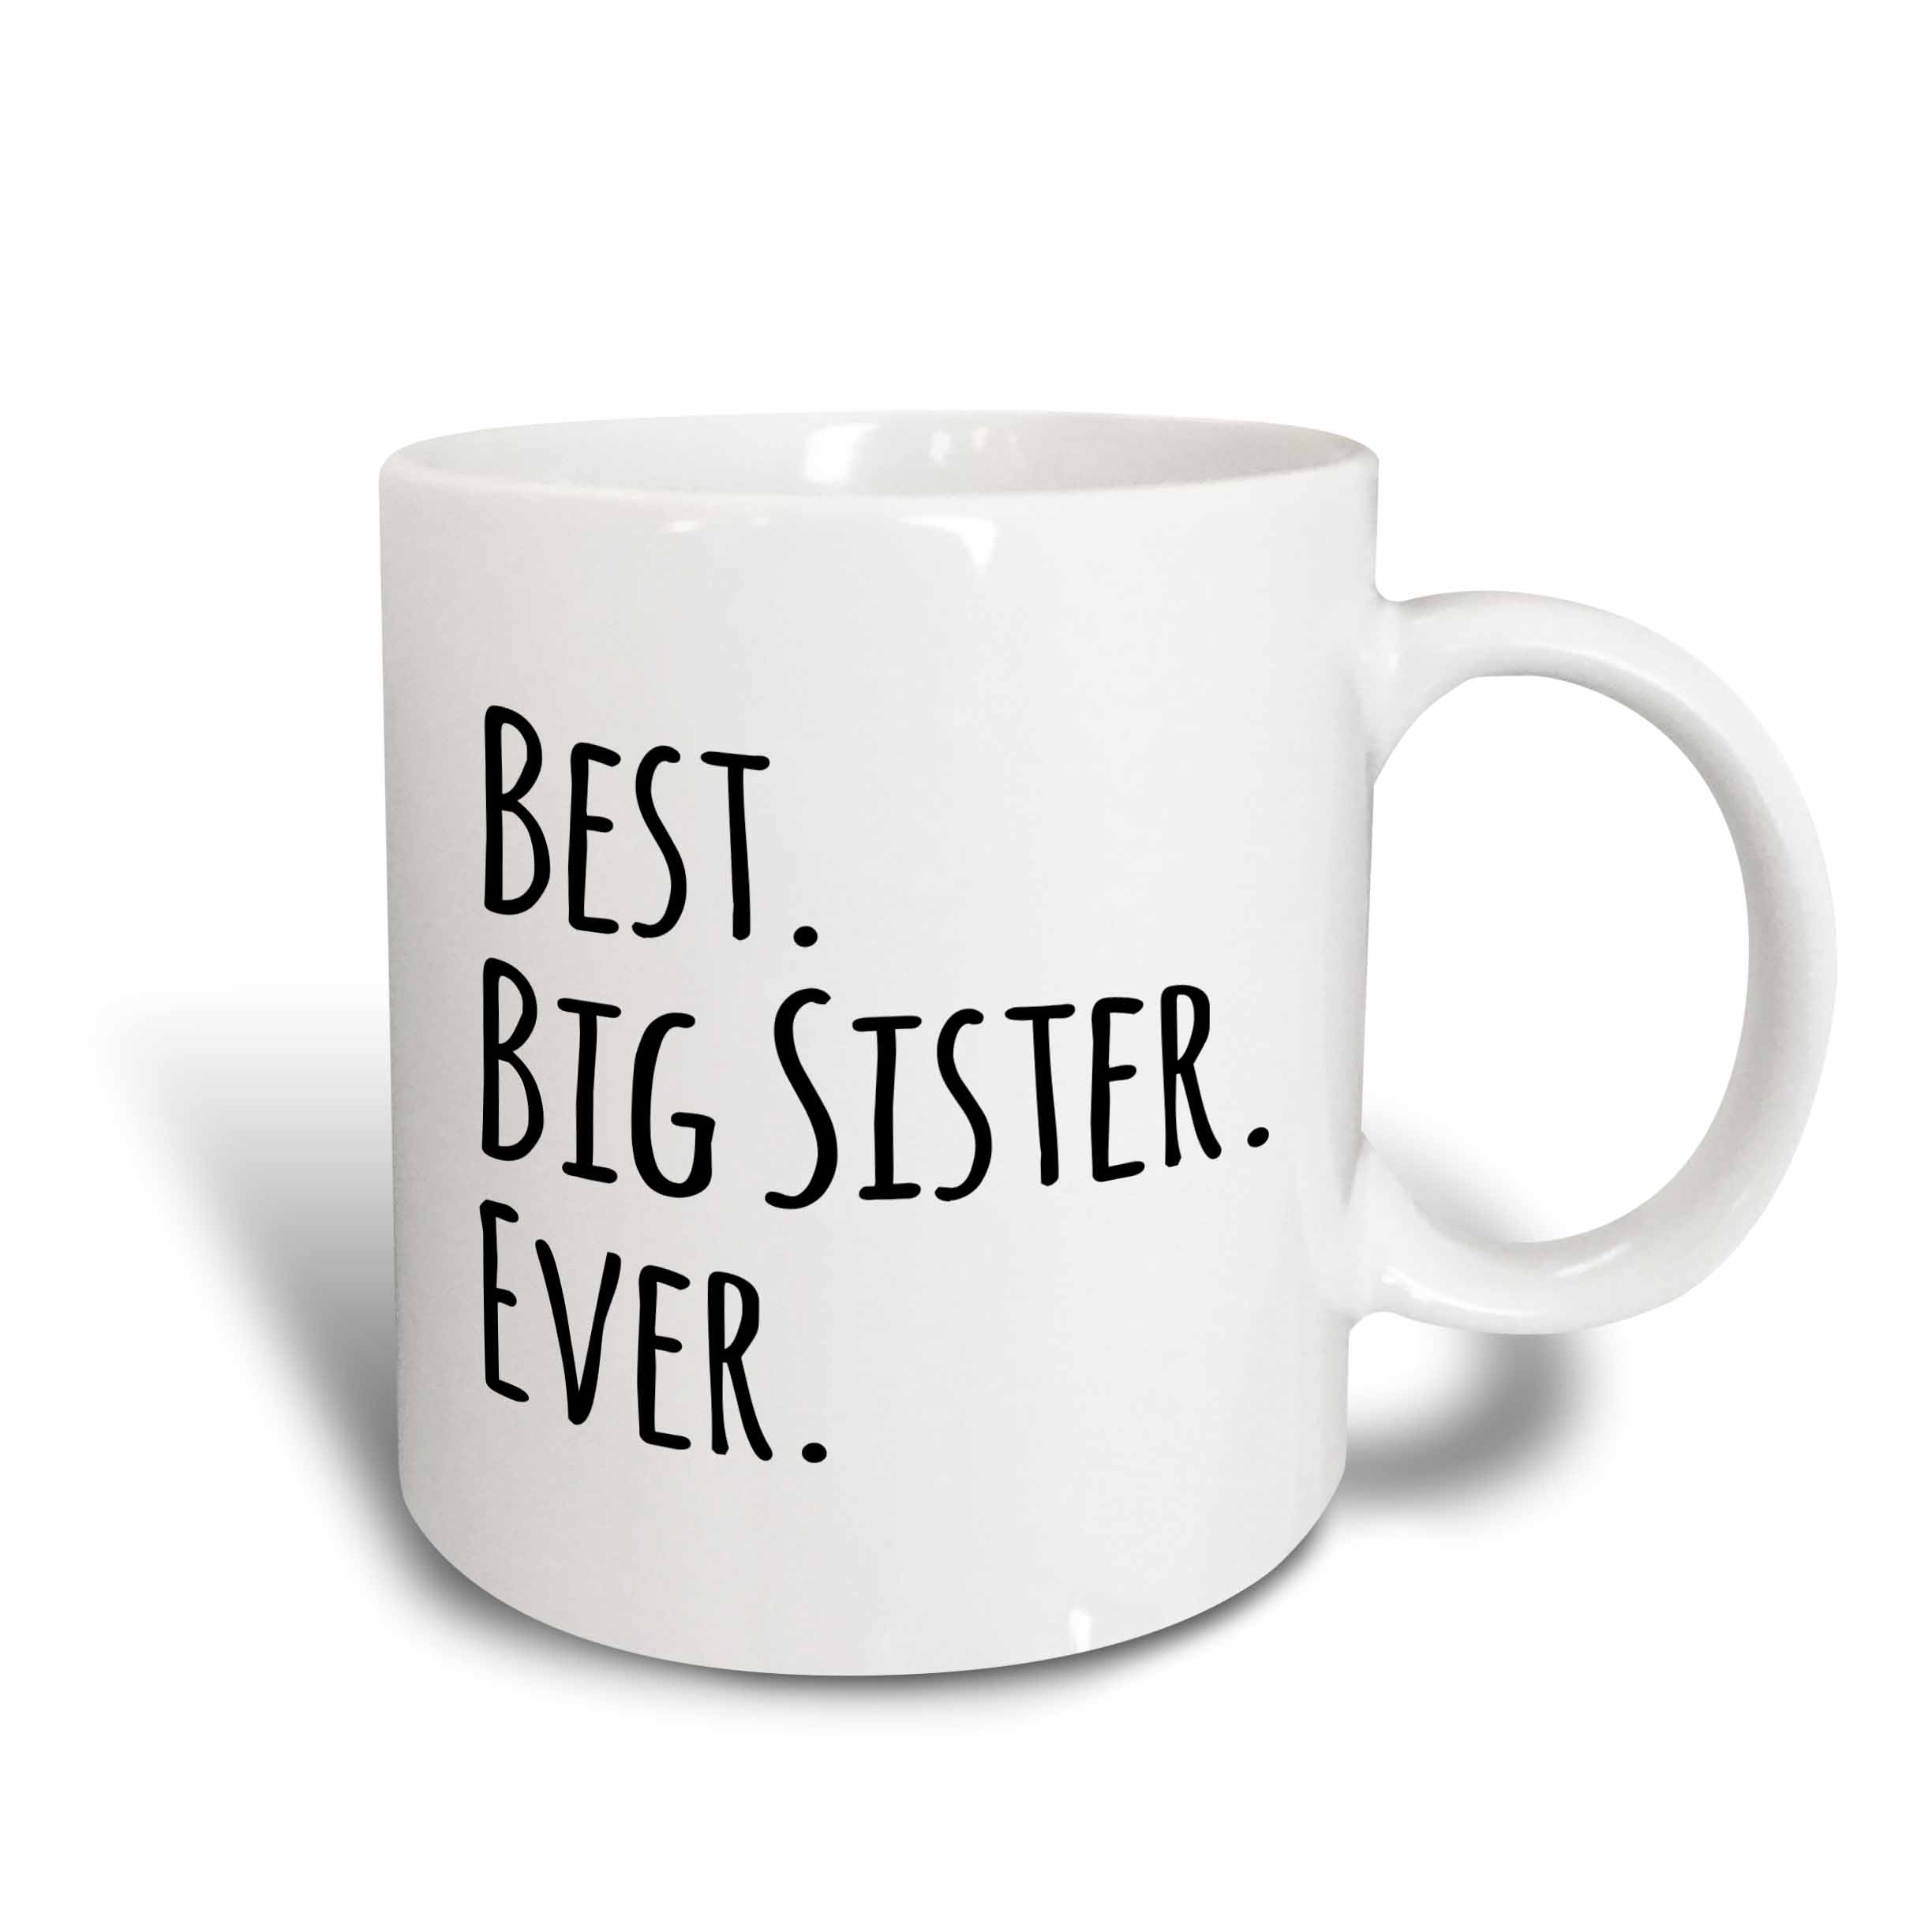 3dRose Best Big Sister Ever Gifts for elder and older siblings black text, Ceramic Mug, 15-ounce by 3dRose